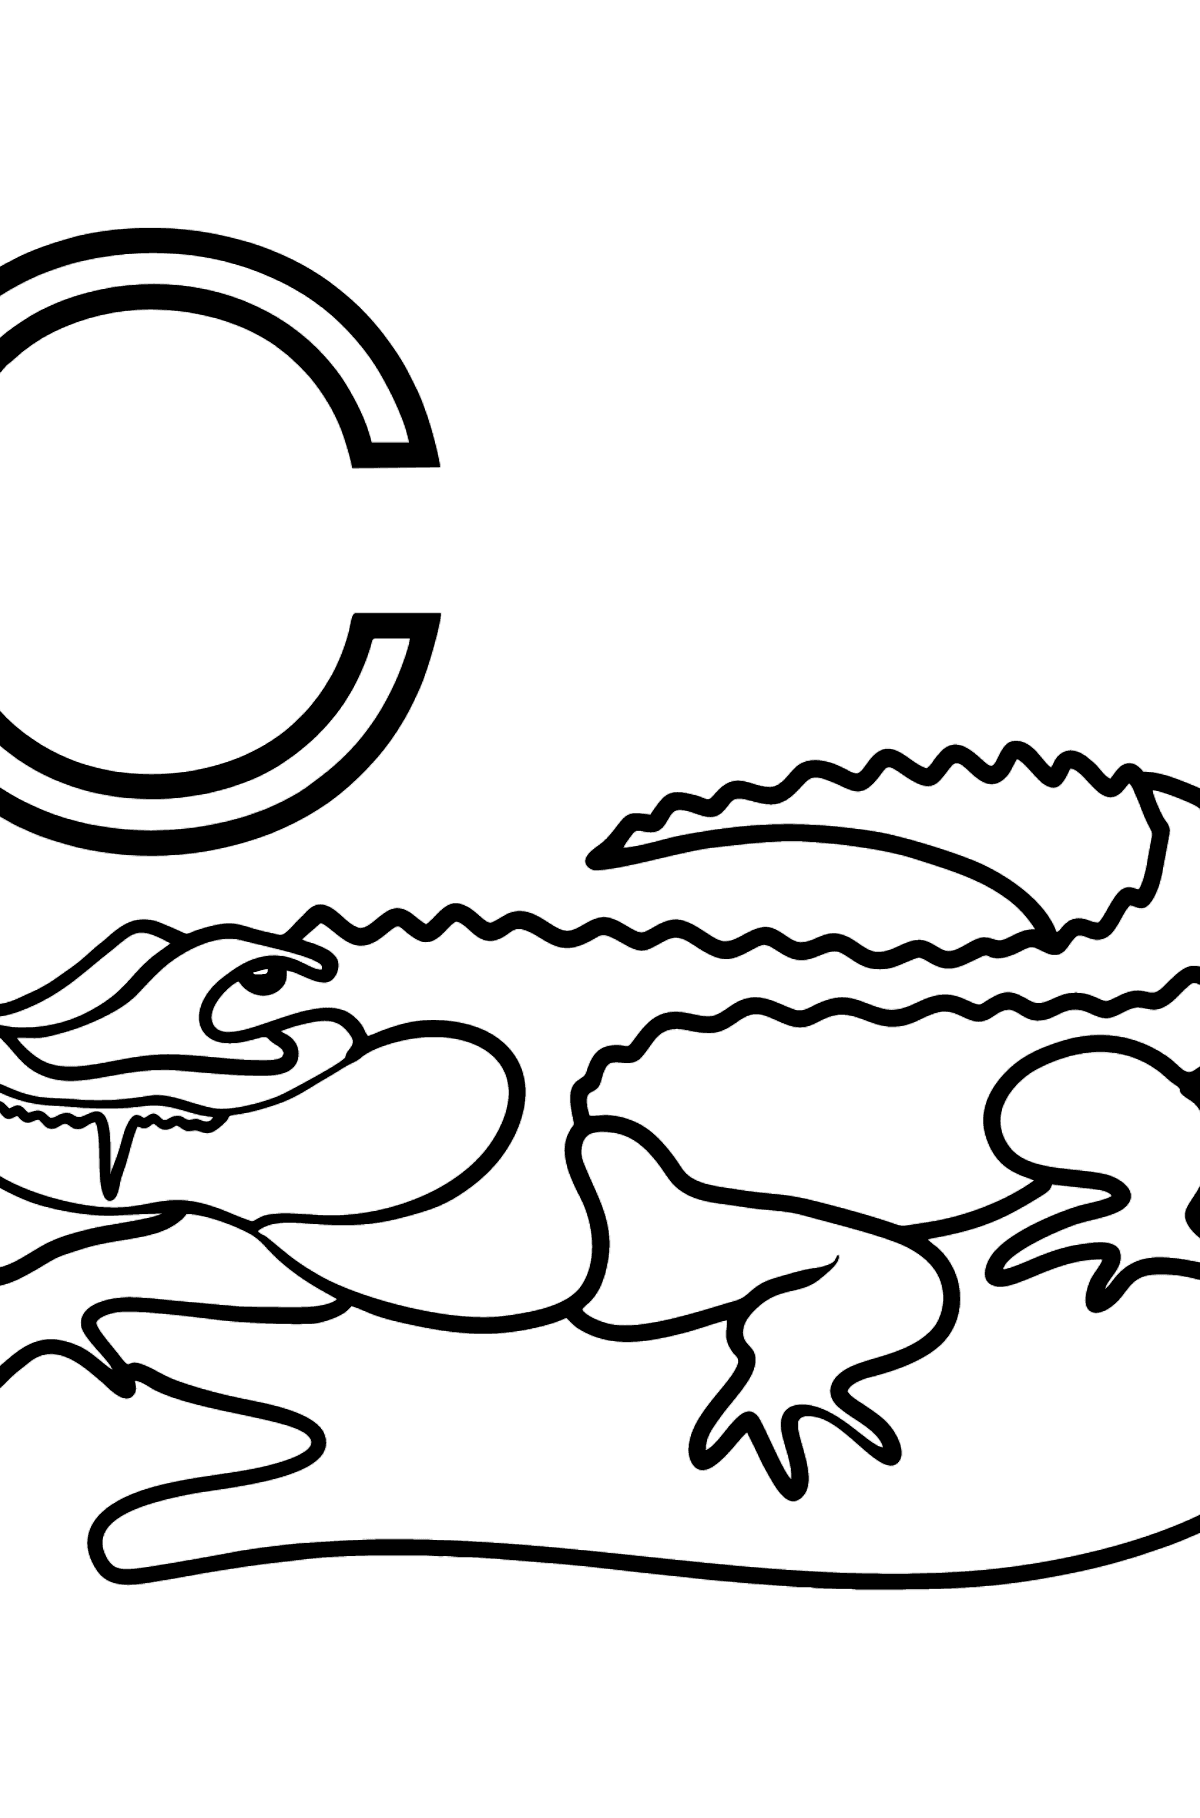 French Letter C coloring pages - CROCODILE - Coloring Pages for Kids